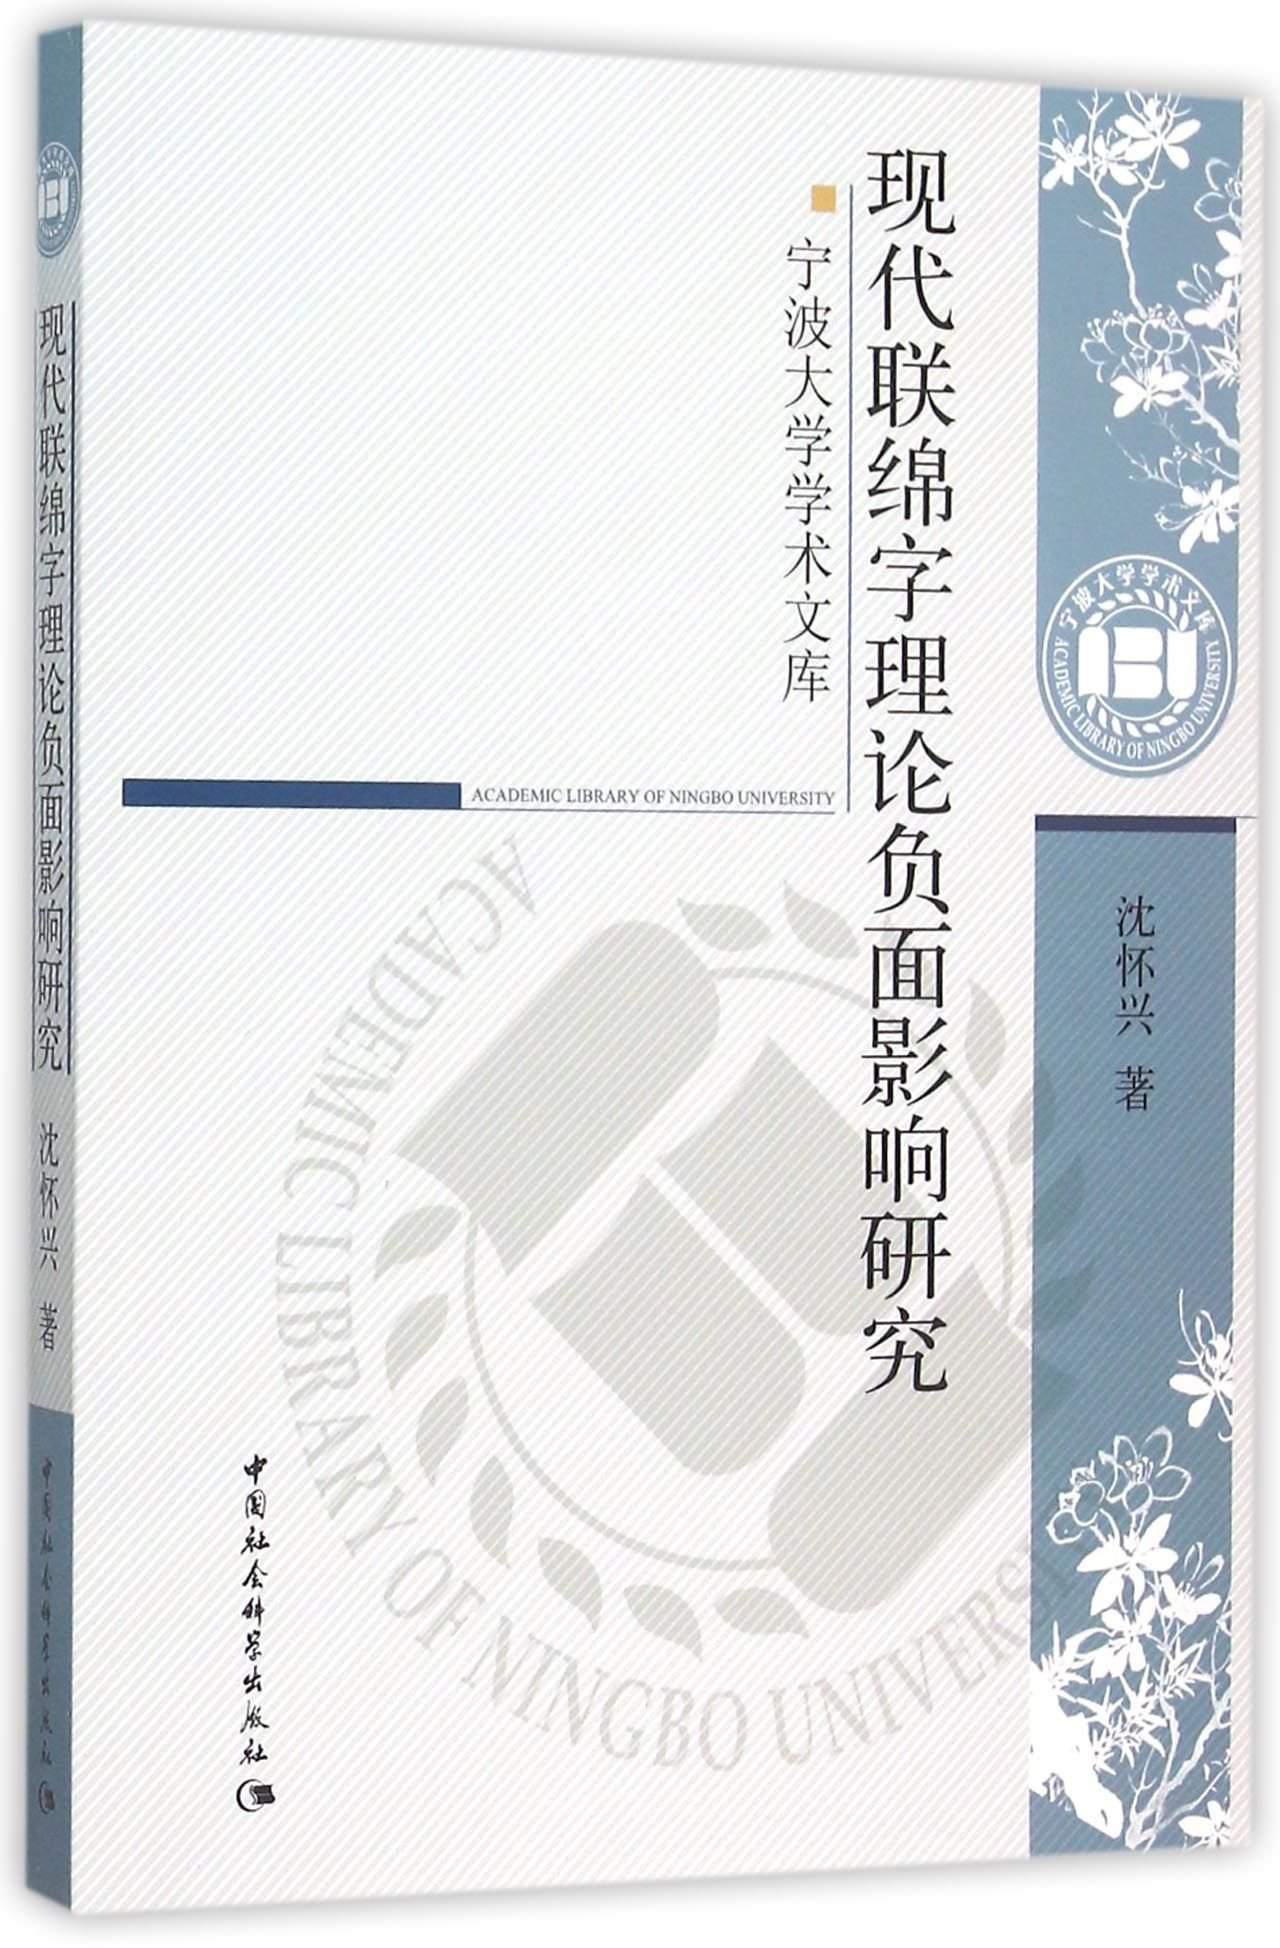 Studies on the Negative Impact of Theories of Modern Binome Word (Chinese  Edition): Shen Huaixing: 9787516162972: Amazon.com: Books